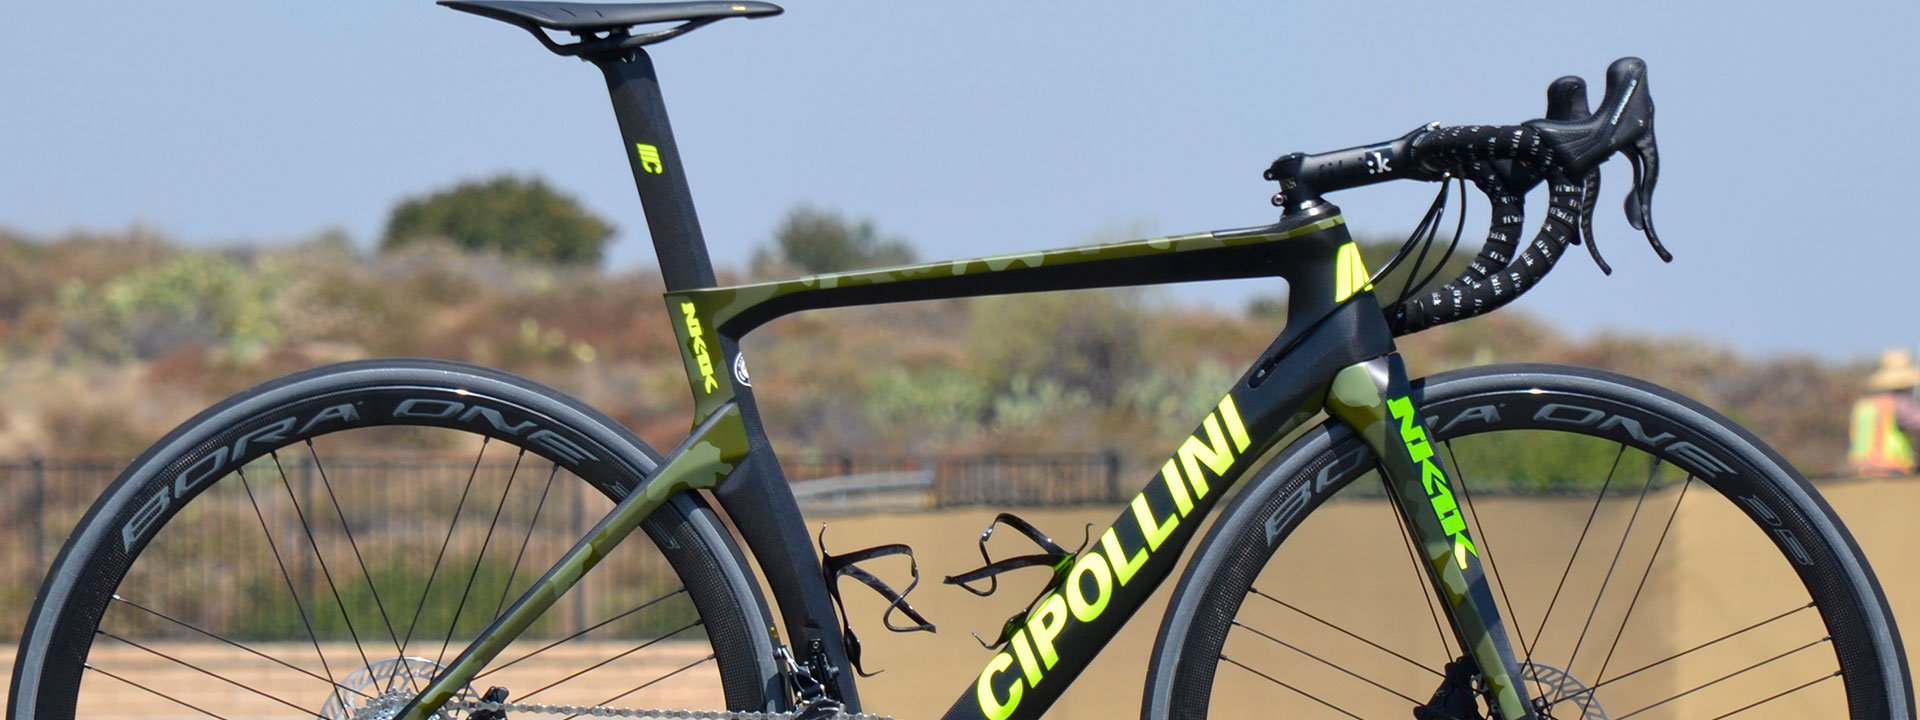 Cipollini NK1K Disc Campagnolo Super Record H11 Complete Bike at twohubs.com